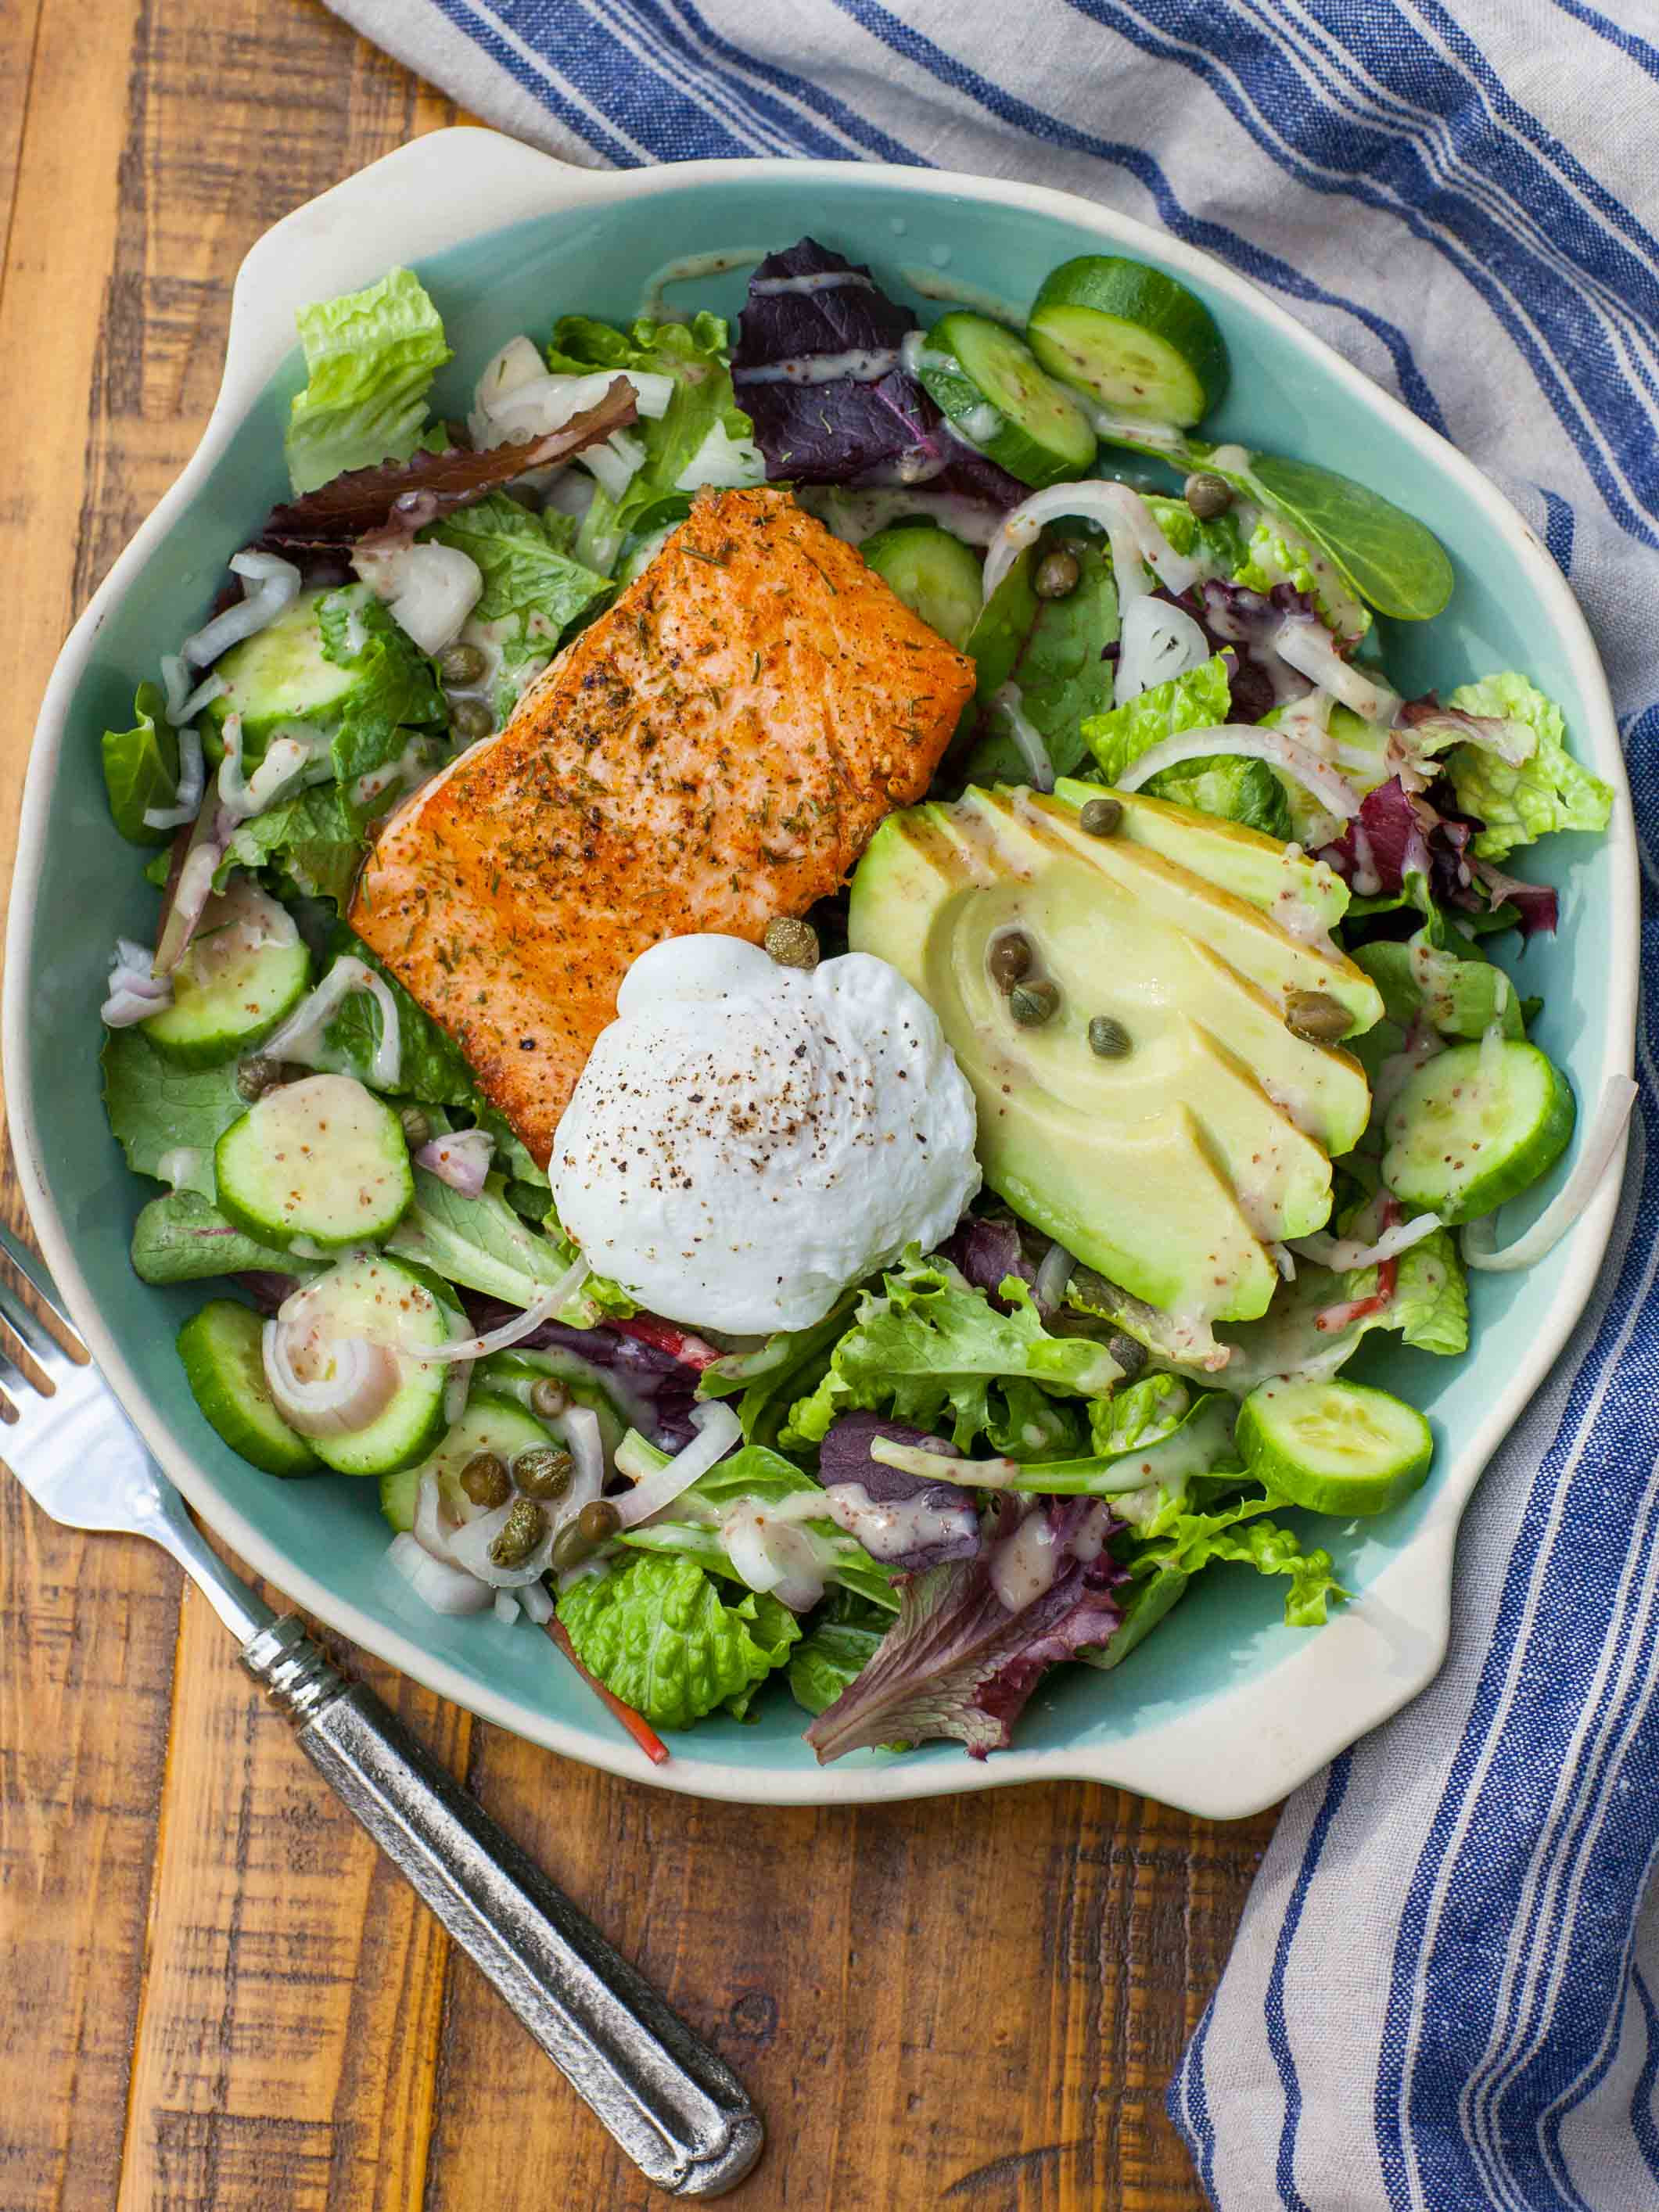 Avocado Keto Diet  Keto Avocado Egg and Salmon Salad Tatyanas Everyday Food